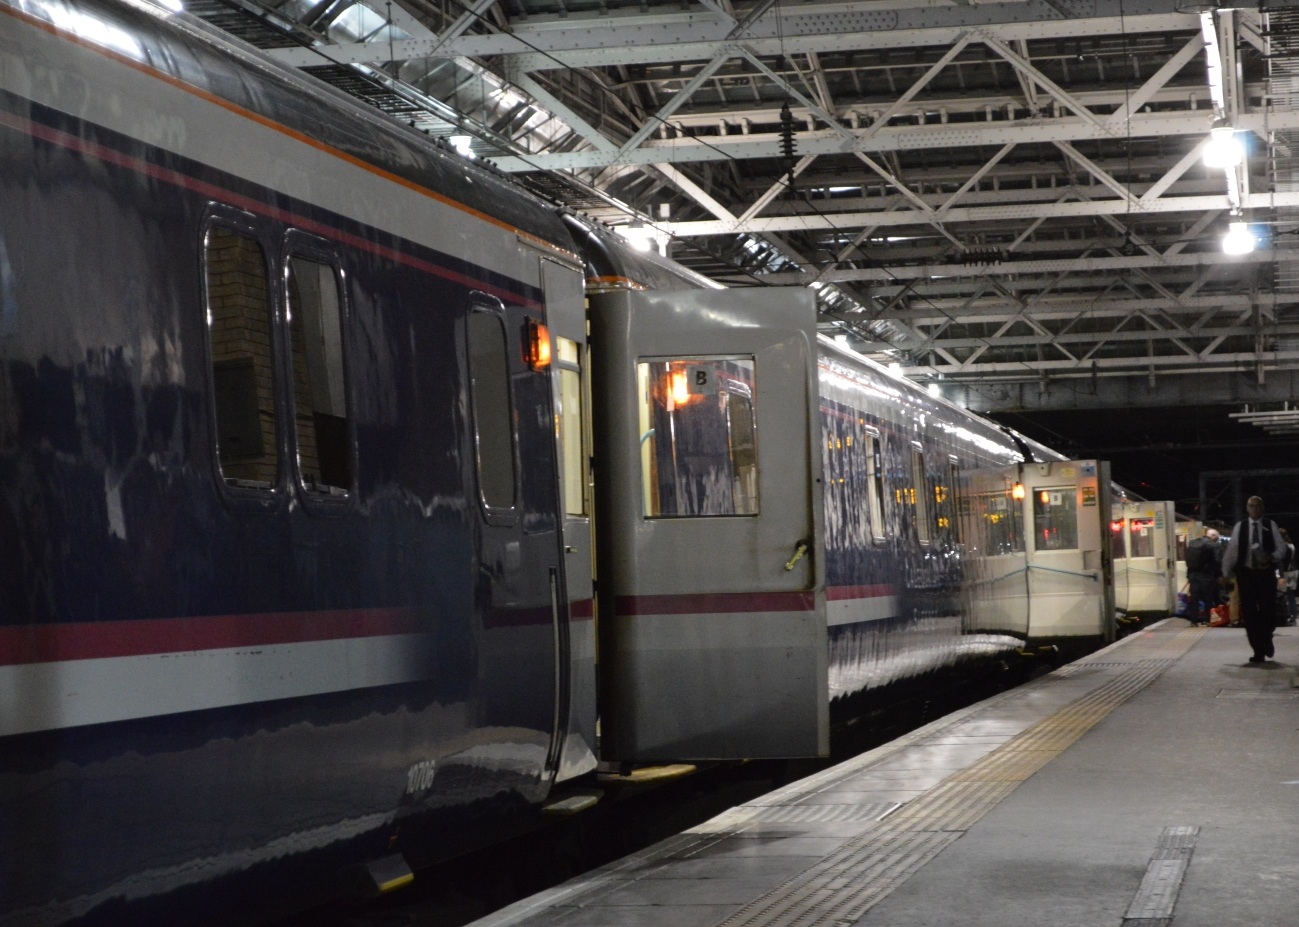 Caledonian Sleeper klaar voor vertrek in Edinburgh ©Noord West Express